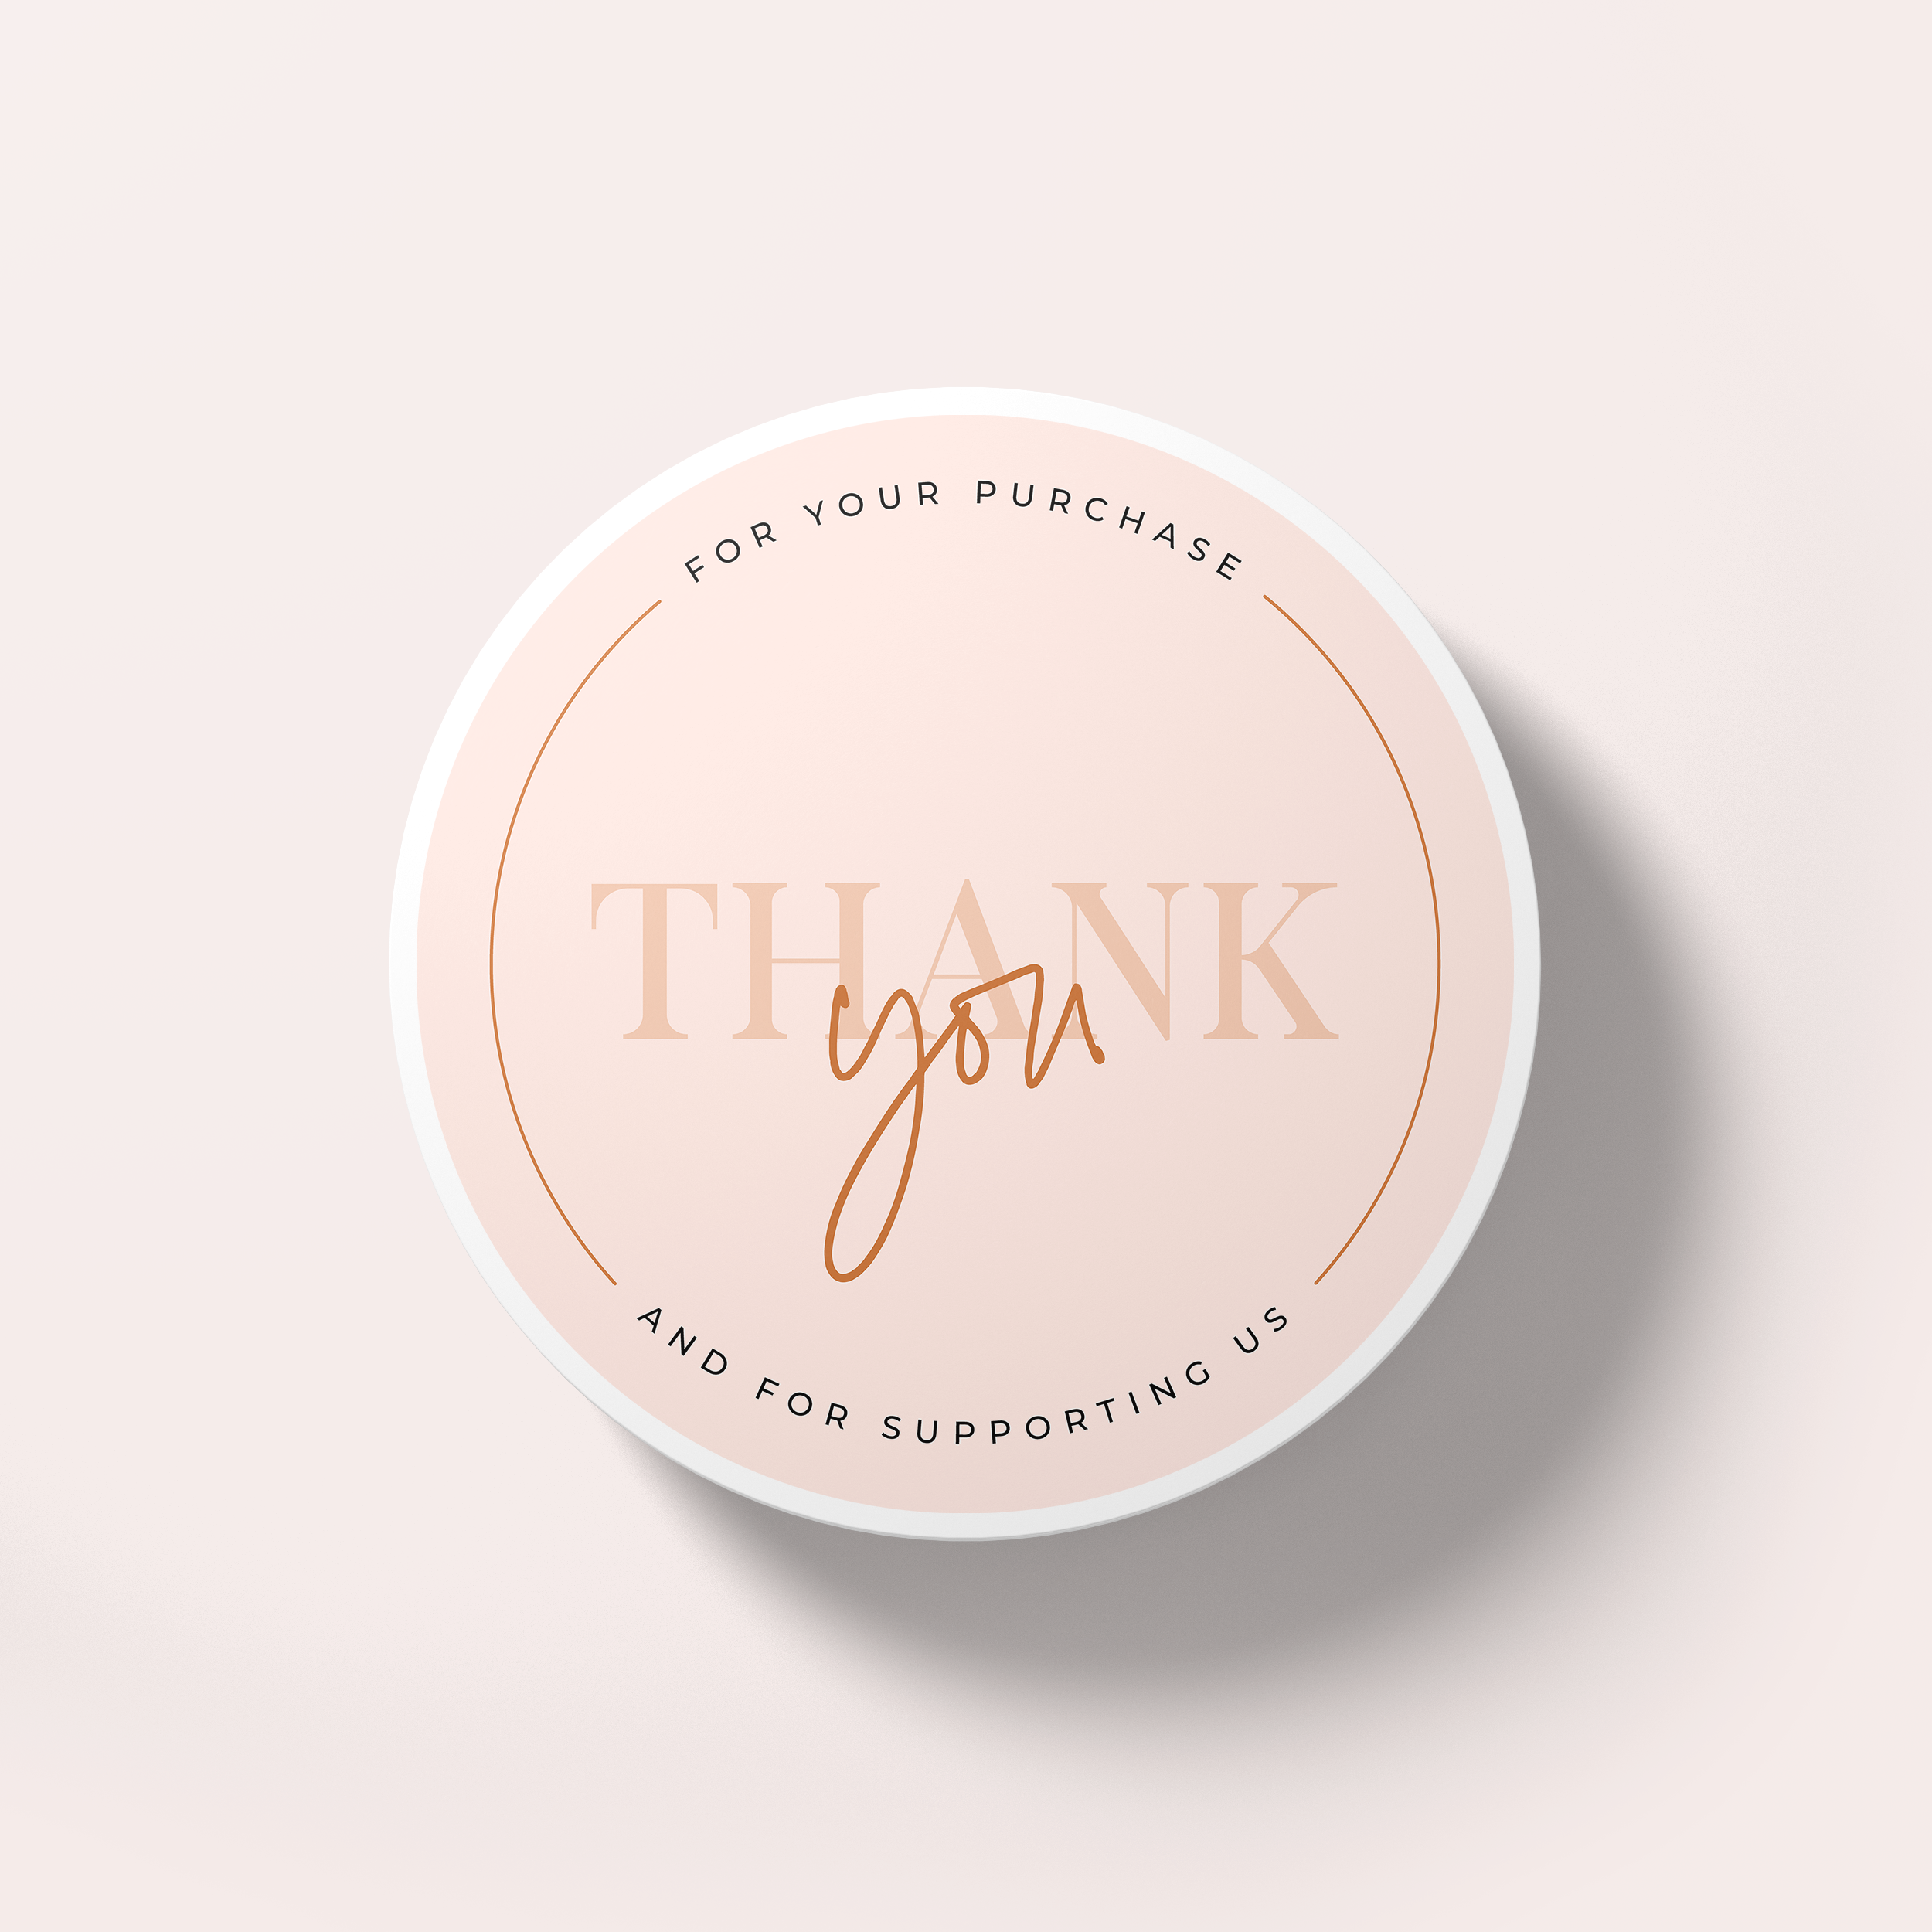 Printable Thank You Sticker Minimalist Design Round Thank You Label For Small Business In 2021 Thank You Card Design Thank You Stickers Print Stickers